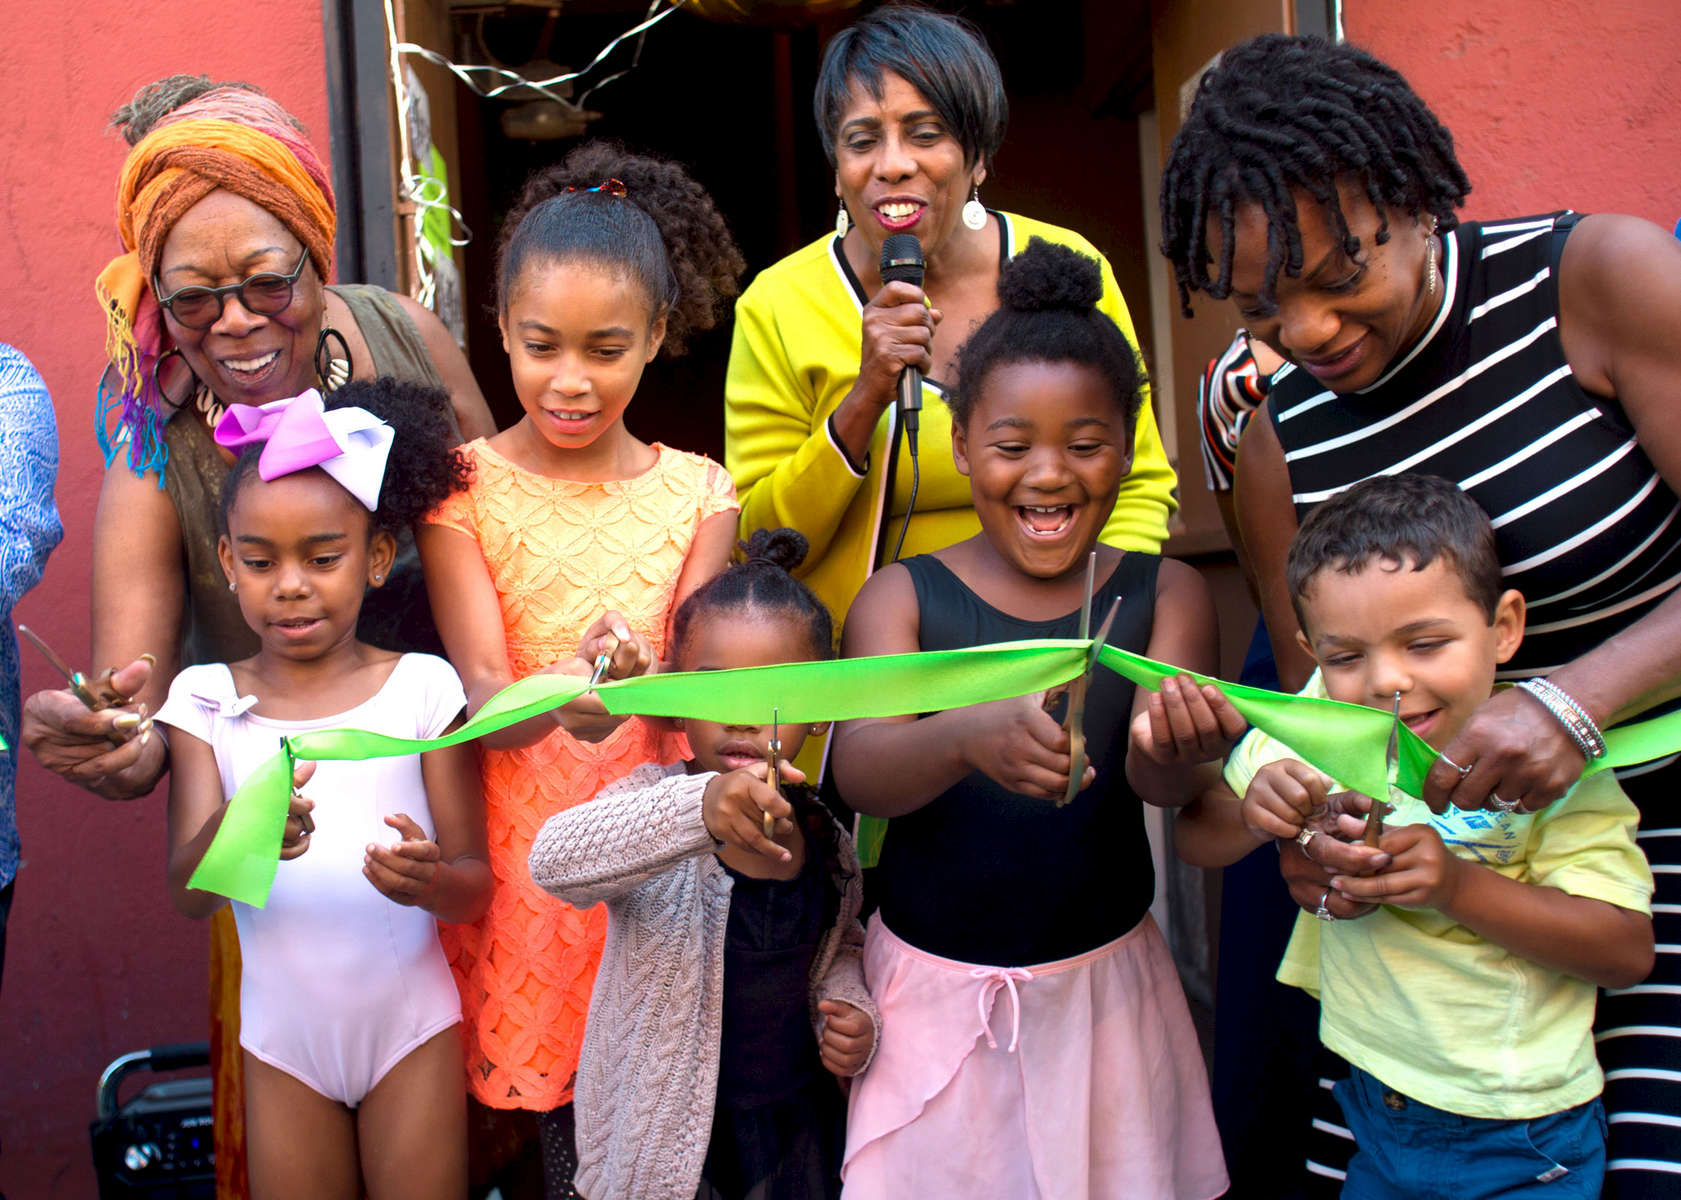 From left to right back row adults: Klair Etheridge, Pamela Lewis-Bridges, Joye Hardiman, PhD, Patricia Corbert. Children left to right: DianaStarr Robinson, 6, Ashea Nougera, 9, Olivia Frieson, 7, Kabby Mitchell Everly (fifth generation), 6, cut the ribbon marking the grand opening of the Tacoma Urban Performing Center (T.U.P.A.C.) on Saturday, July 8, 2017 in Tacoma, WA.. Kabby Mitchell, founder of T.U.P.A.C., lived in Tacoma, taught at The Evergreen State College and was the first African-American Principle Dancer for the Pacific Northwest Ballet. Kabby, unexpectedly passed away on May 4, 2017. Professional dance instruction will be offered there. (© Karen Ducey)